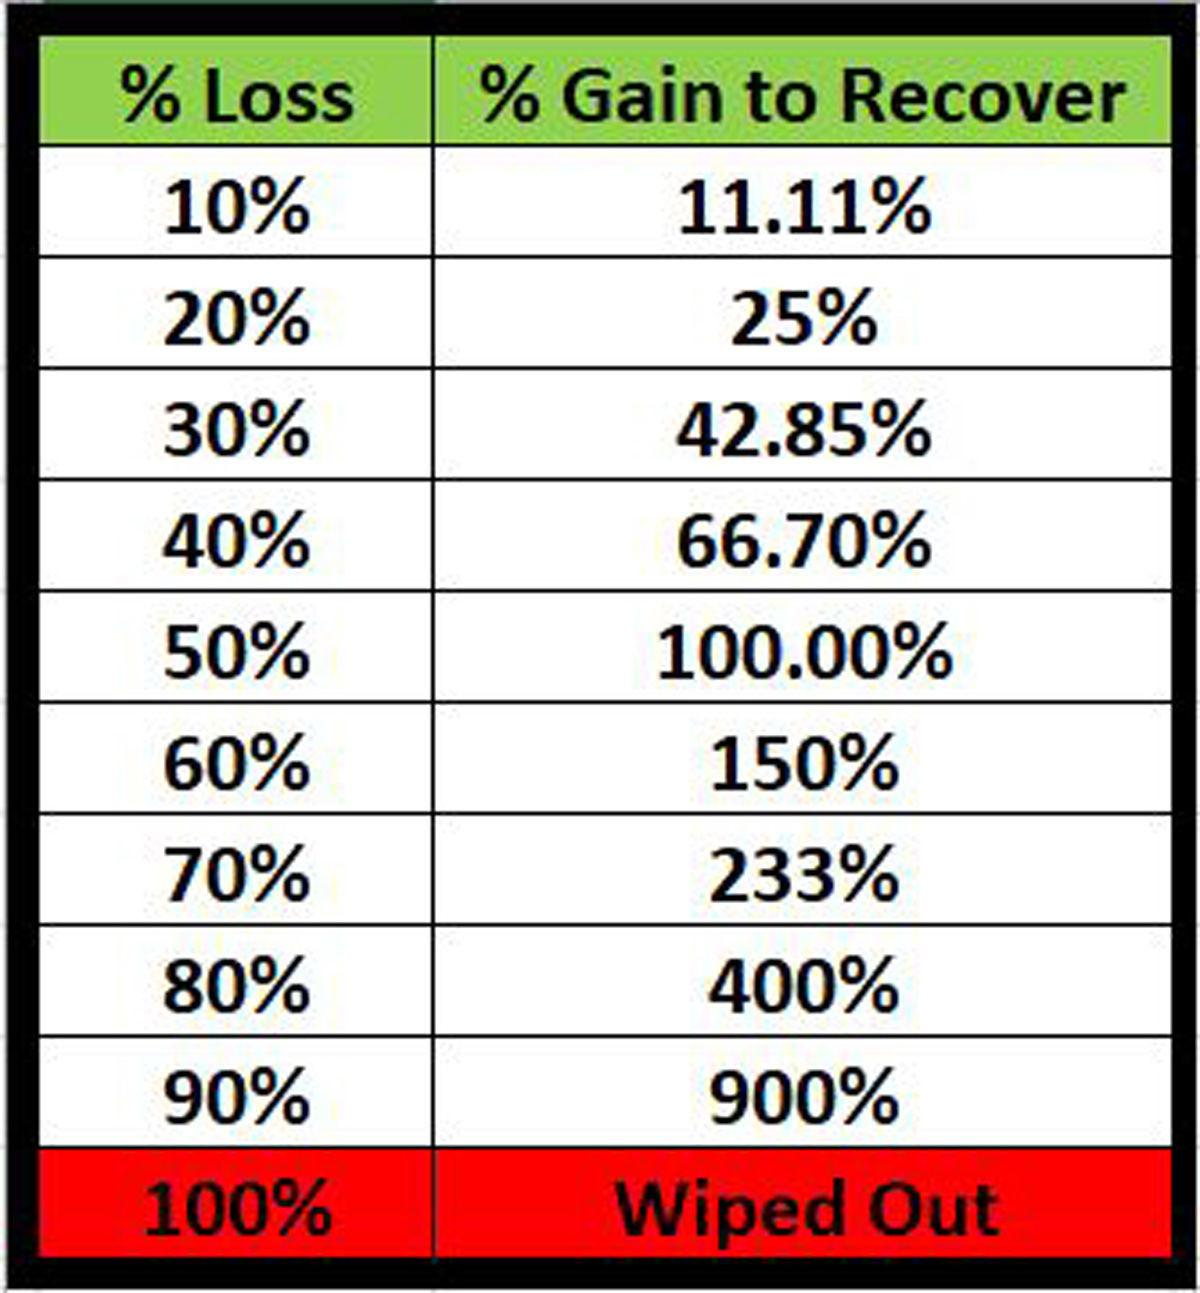 Percentage Gain to Recover